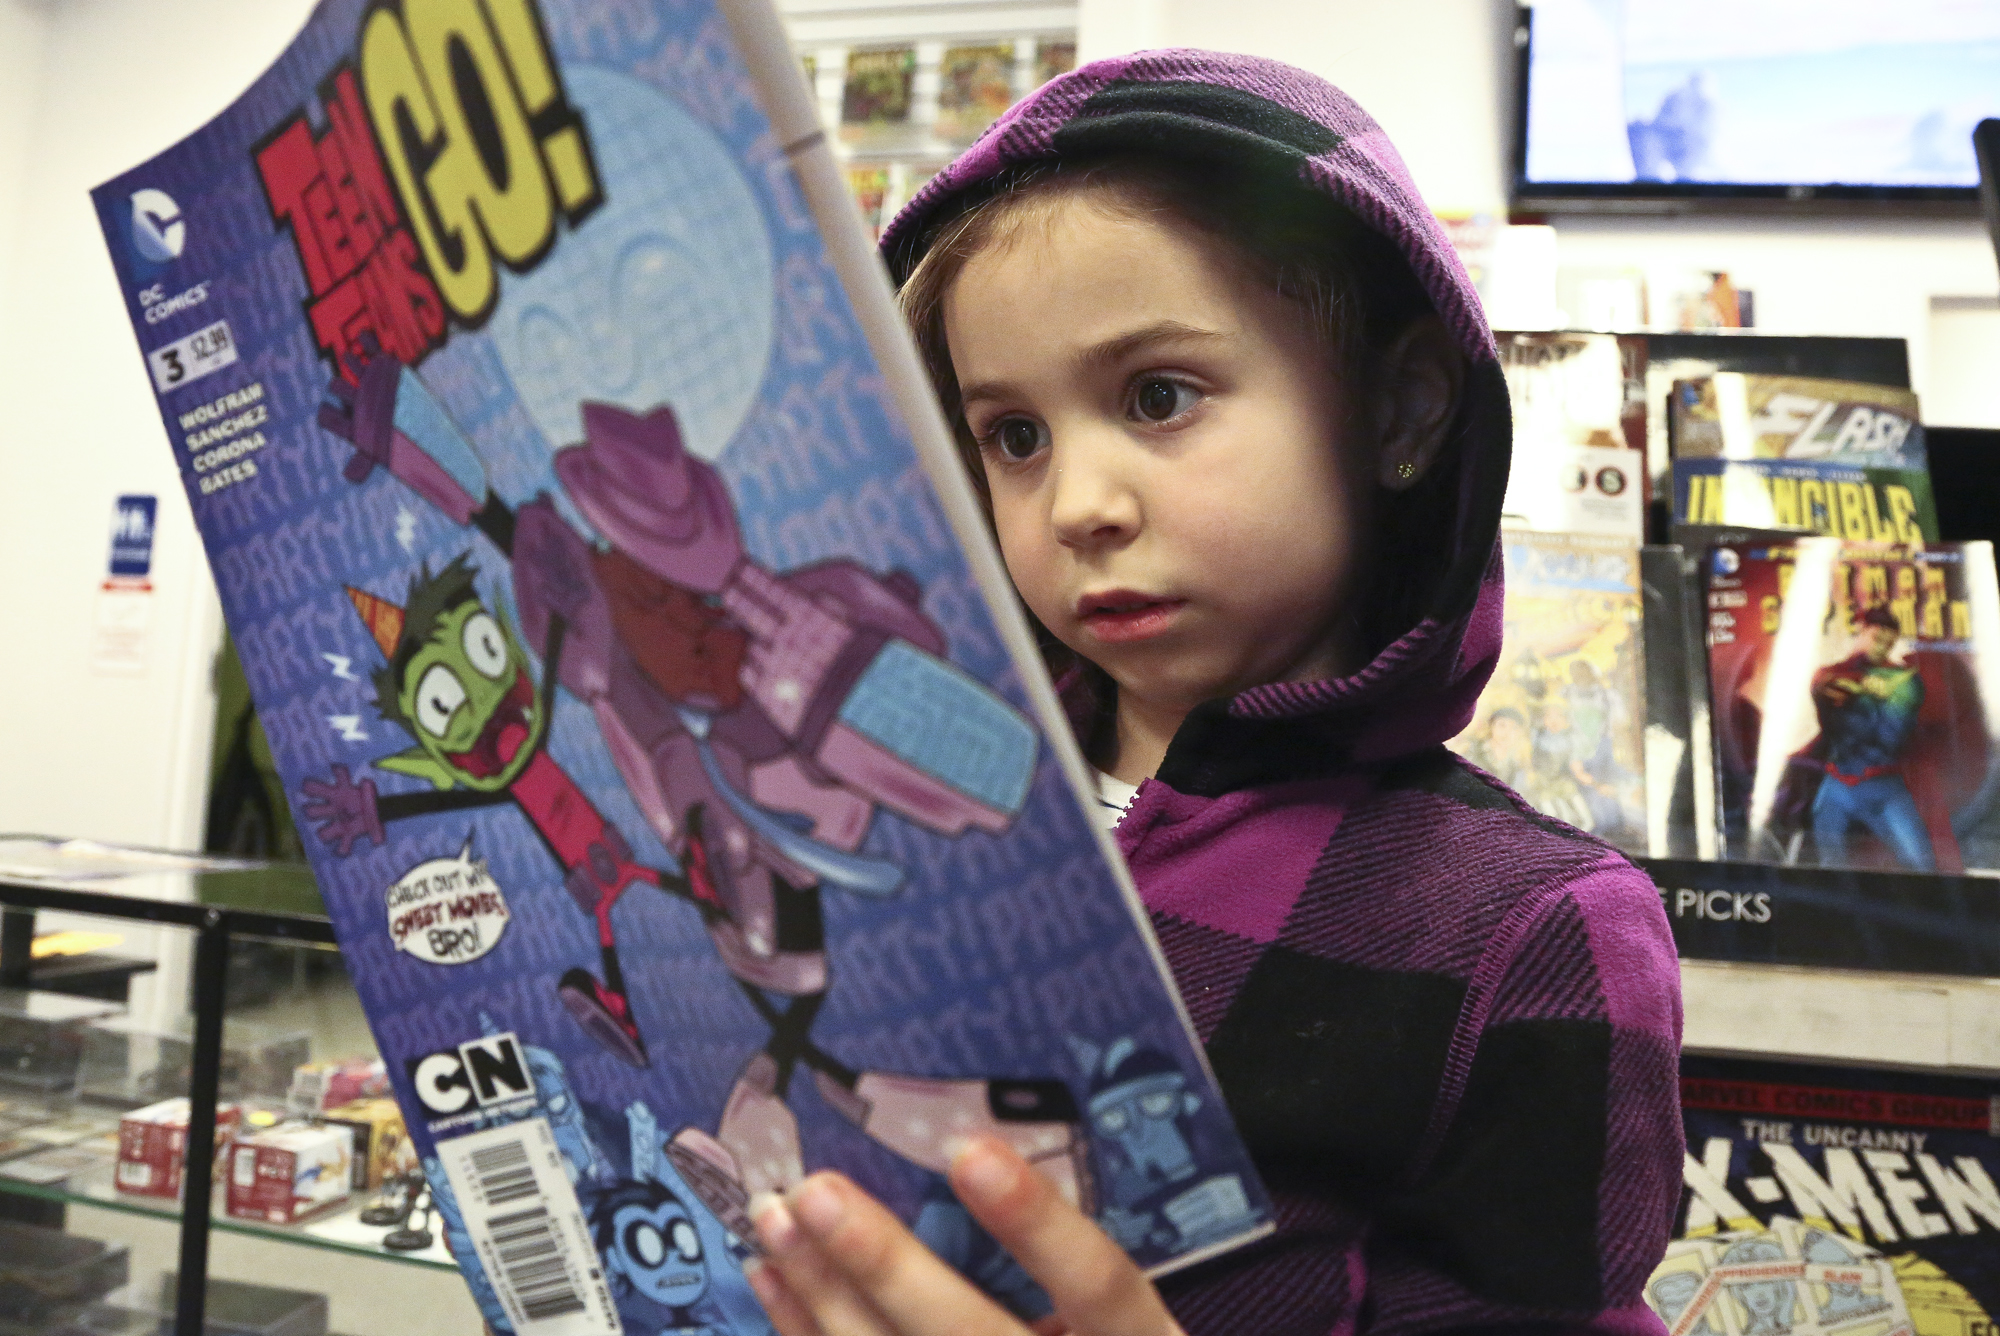 """Kylie Hunt, 6 reads the comic book """"Teen Titans Go!"""" as she waits for her father Bill Hunt of Felton to finalize his comic book purchases at Planet X Comics and Collectibles in York Township Friday, April 25, 2014. Kylie dressed up as a Bat Girl last year Bill said. Photo by Sonya Paclob"""